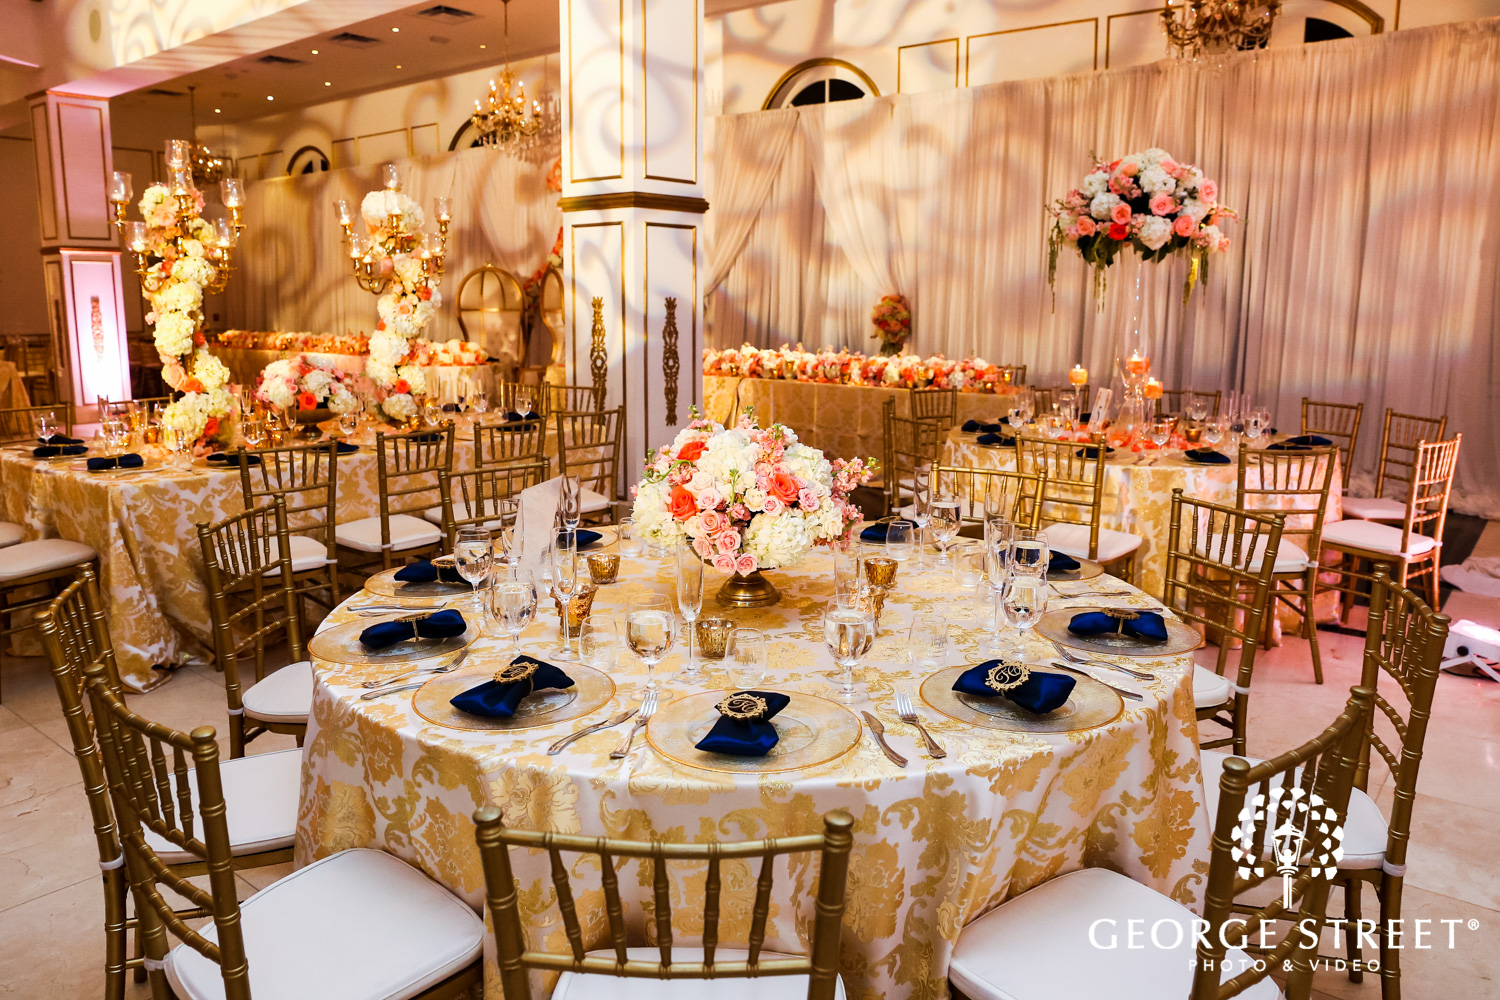 Wedding Accessories Look Inside The Venue You Know What They Say Location